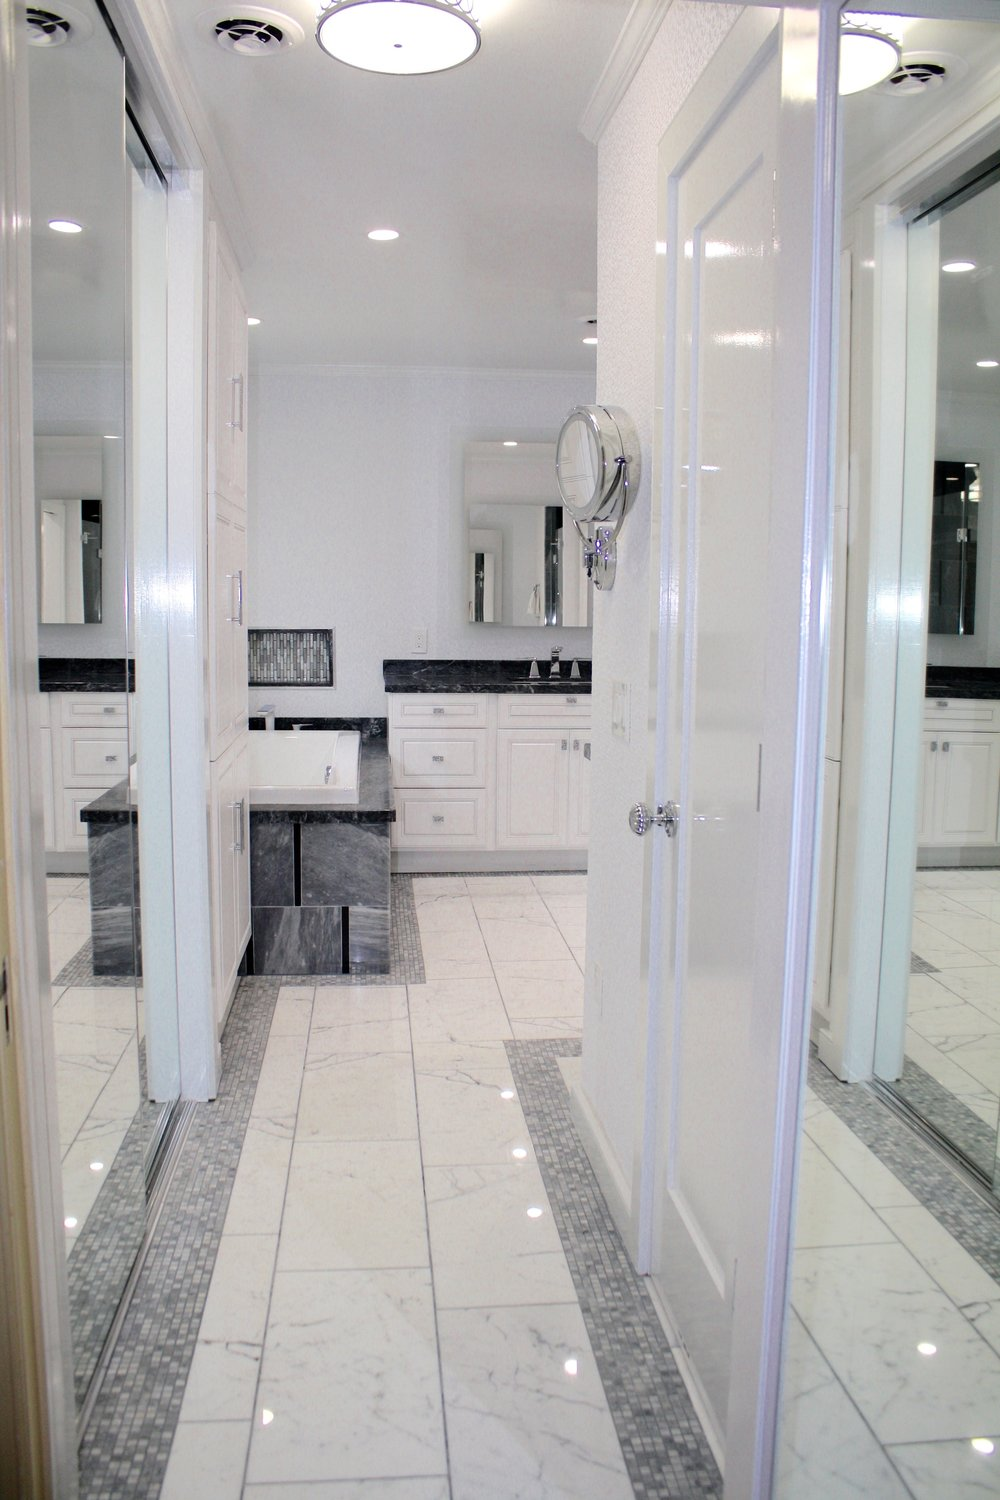 while ensuite curated uncluttered space front entirely on master remain house my face and his so the could even category storage vanities wanted archives drawers frame hers ample that residencea clients tub functional bow